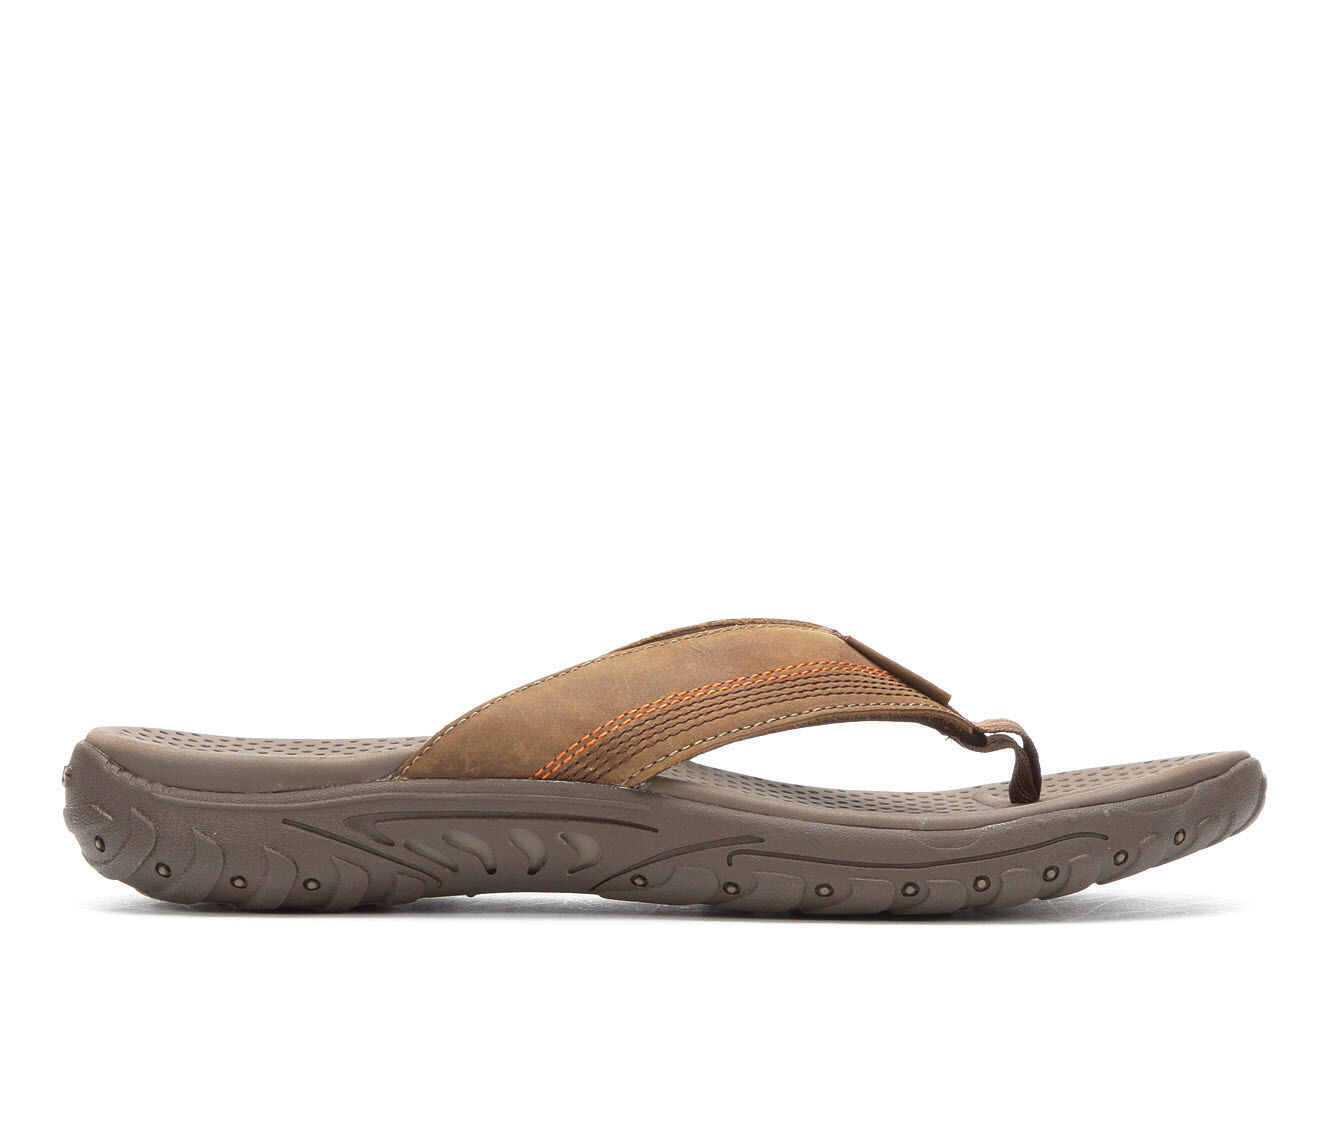 Men's Skechers Cobano 65460 Flip-Flops Brown